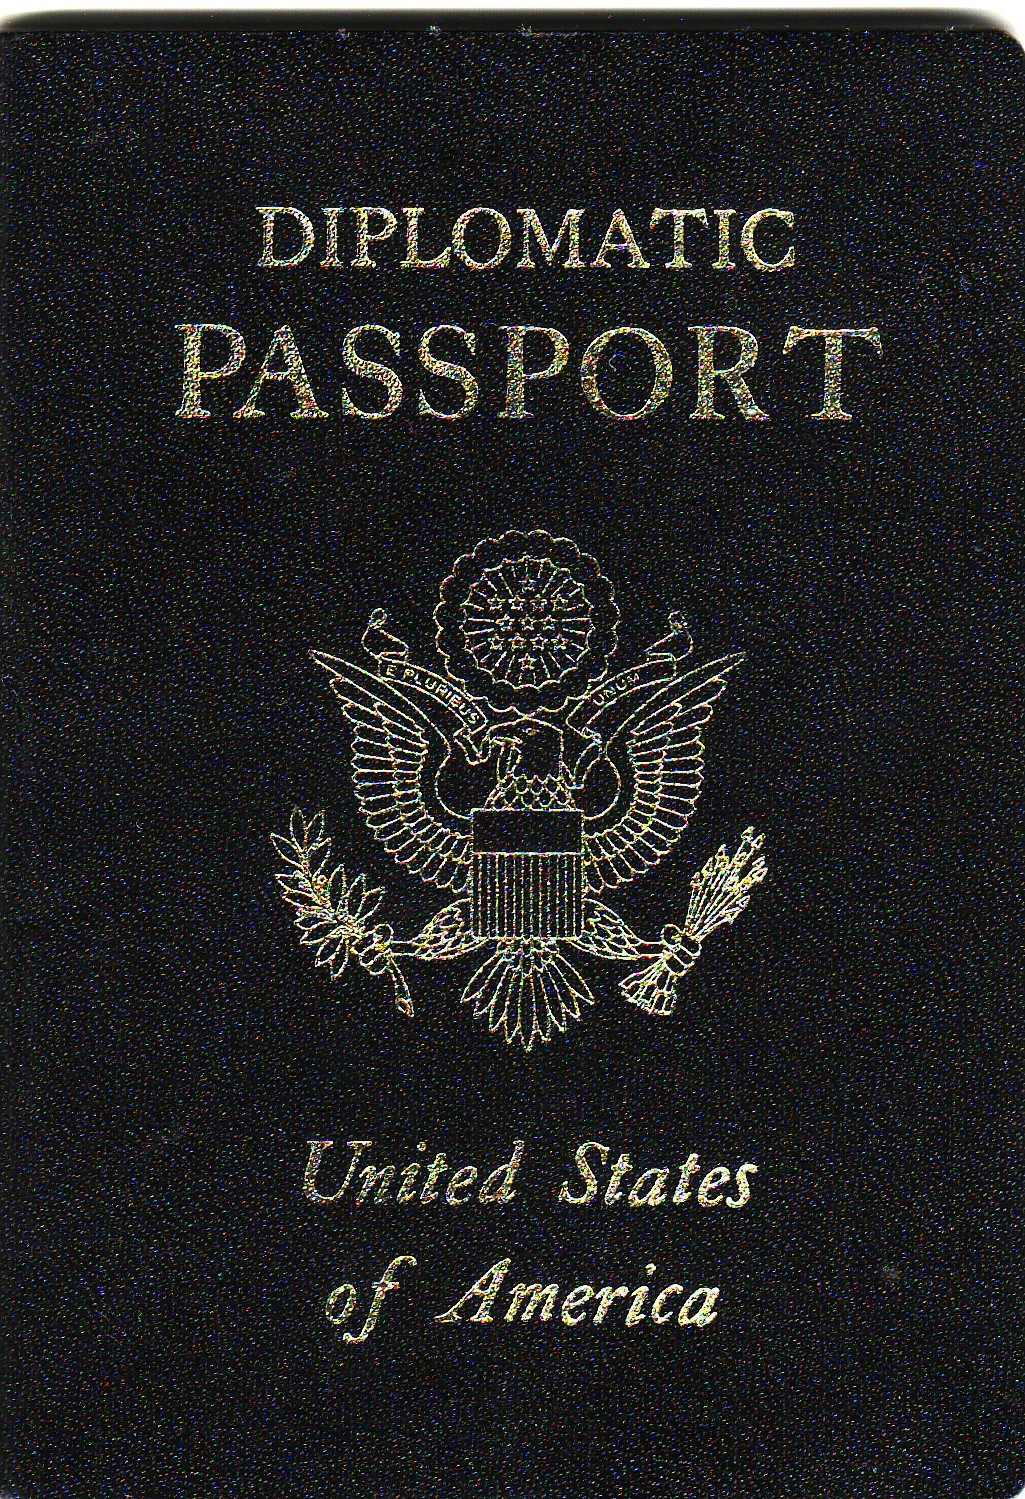 http://upload.wikimedia.org/wikipedia/commons/3/36/US_Diplomatic_Passport.JPG